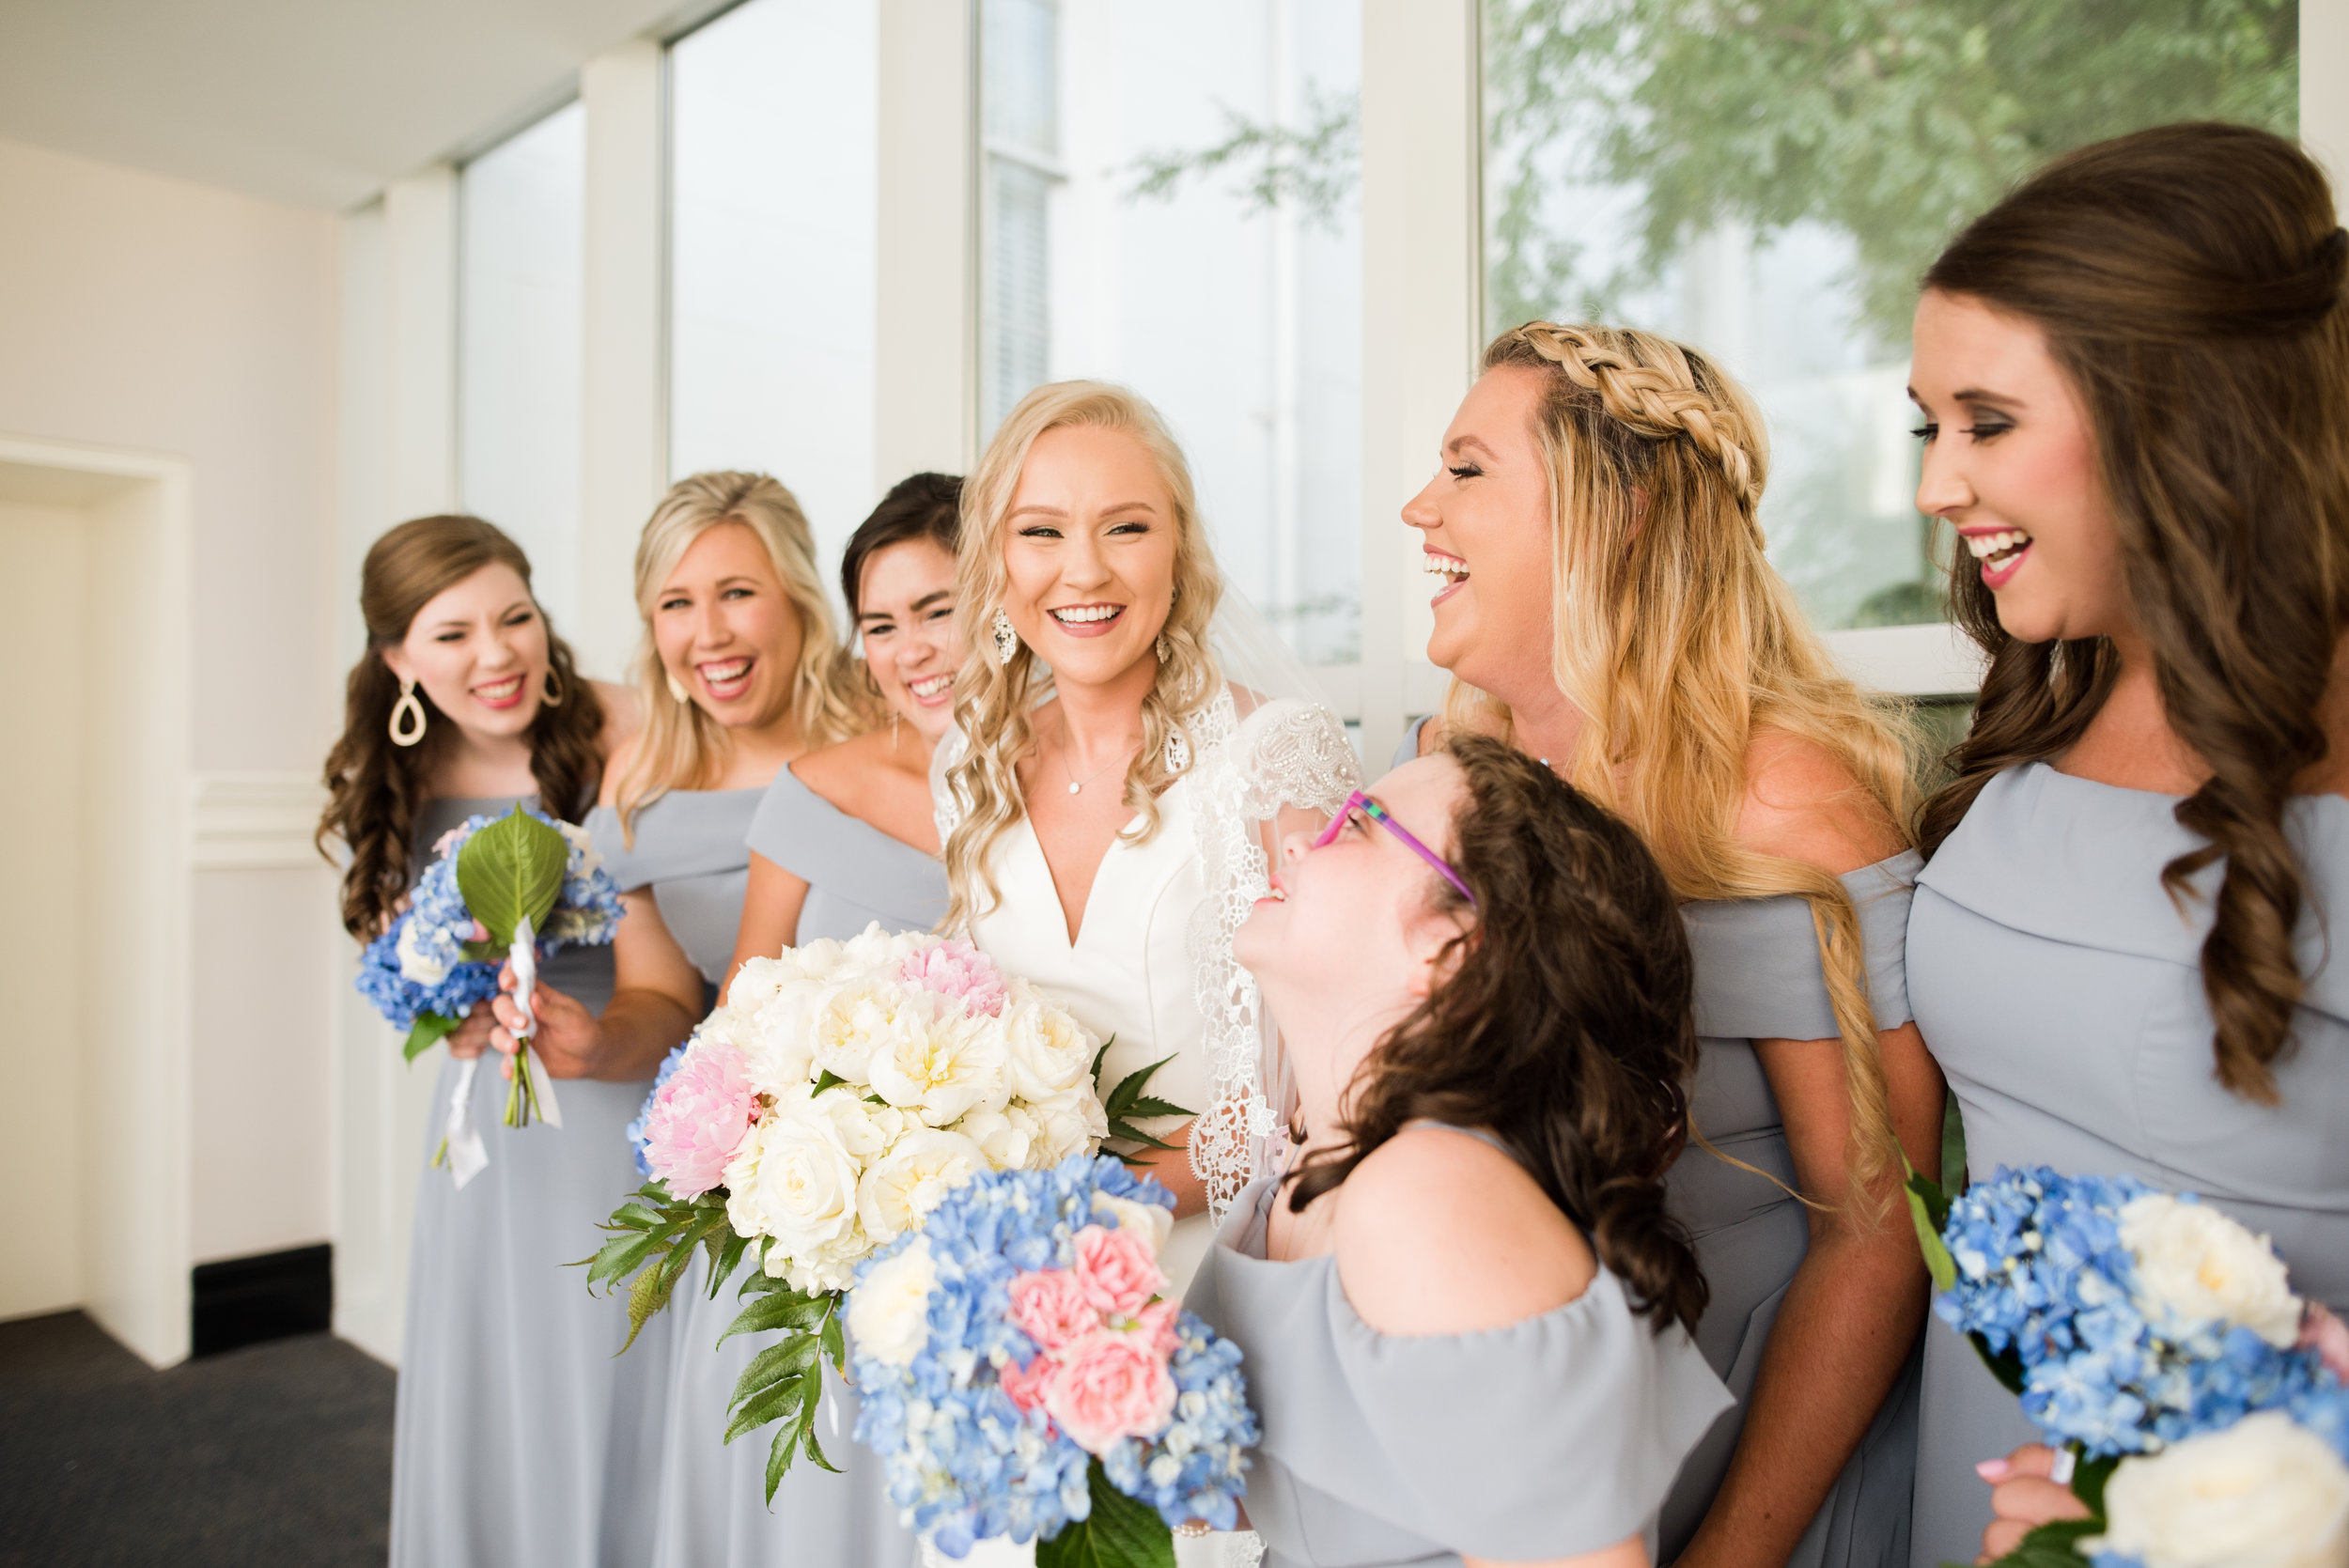 History museum of mobile, alabama wedding bridesmaids shot by kristen marcus photography in June